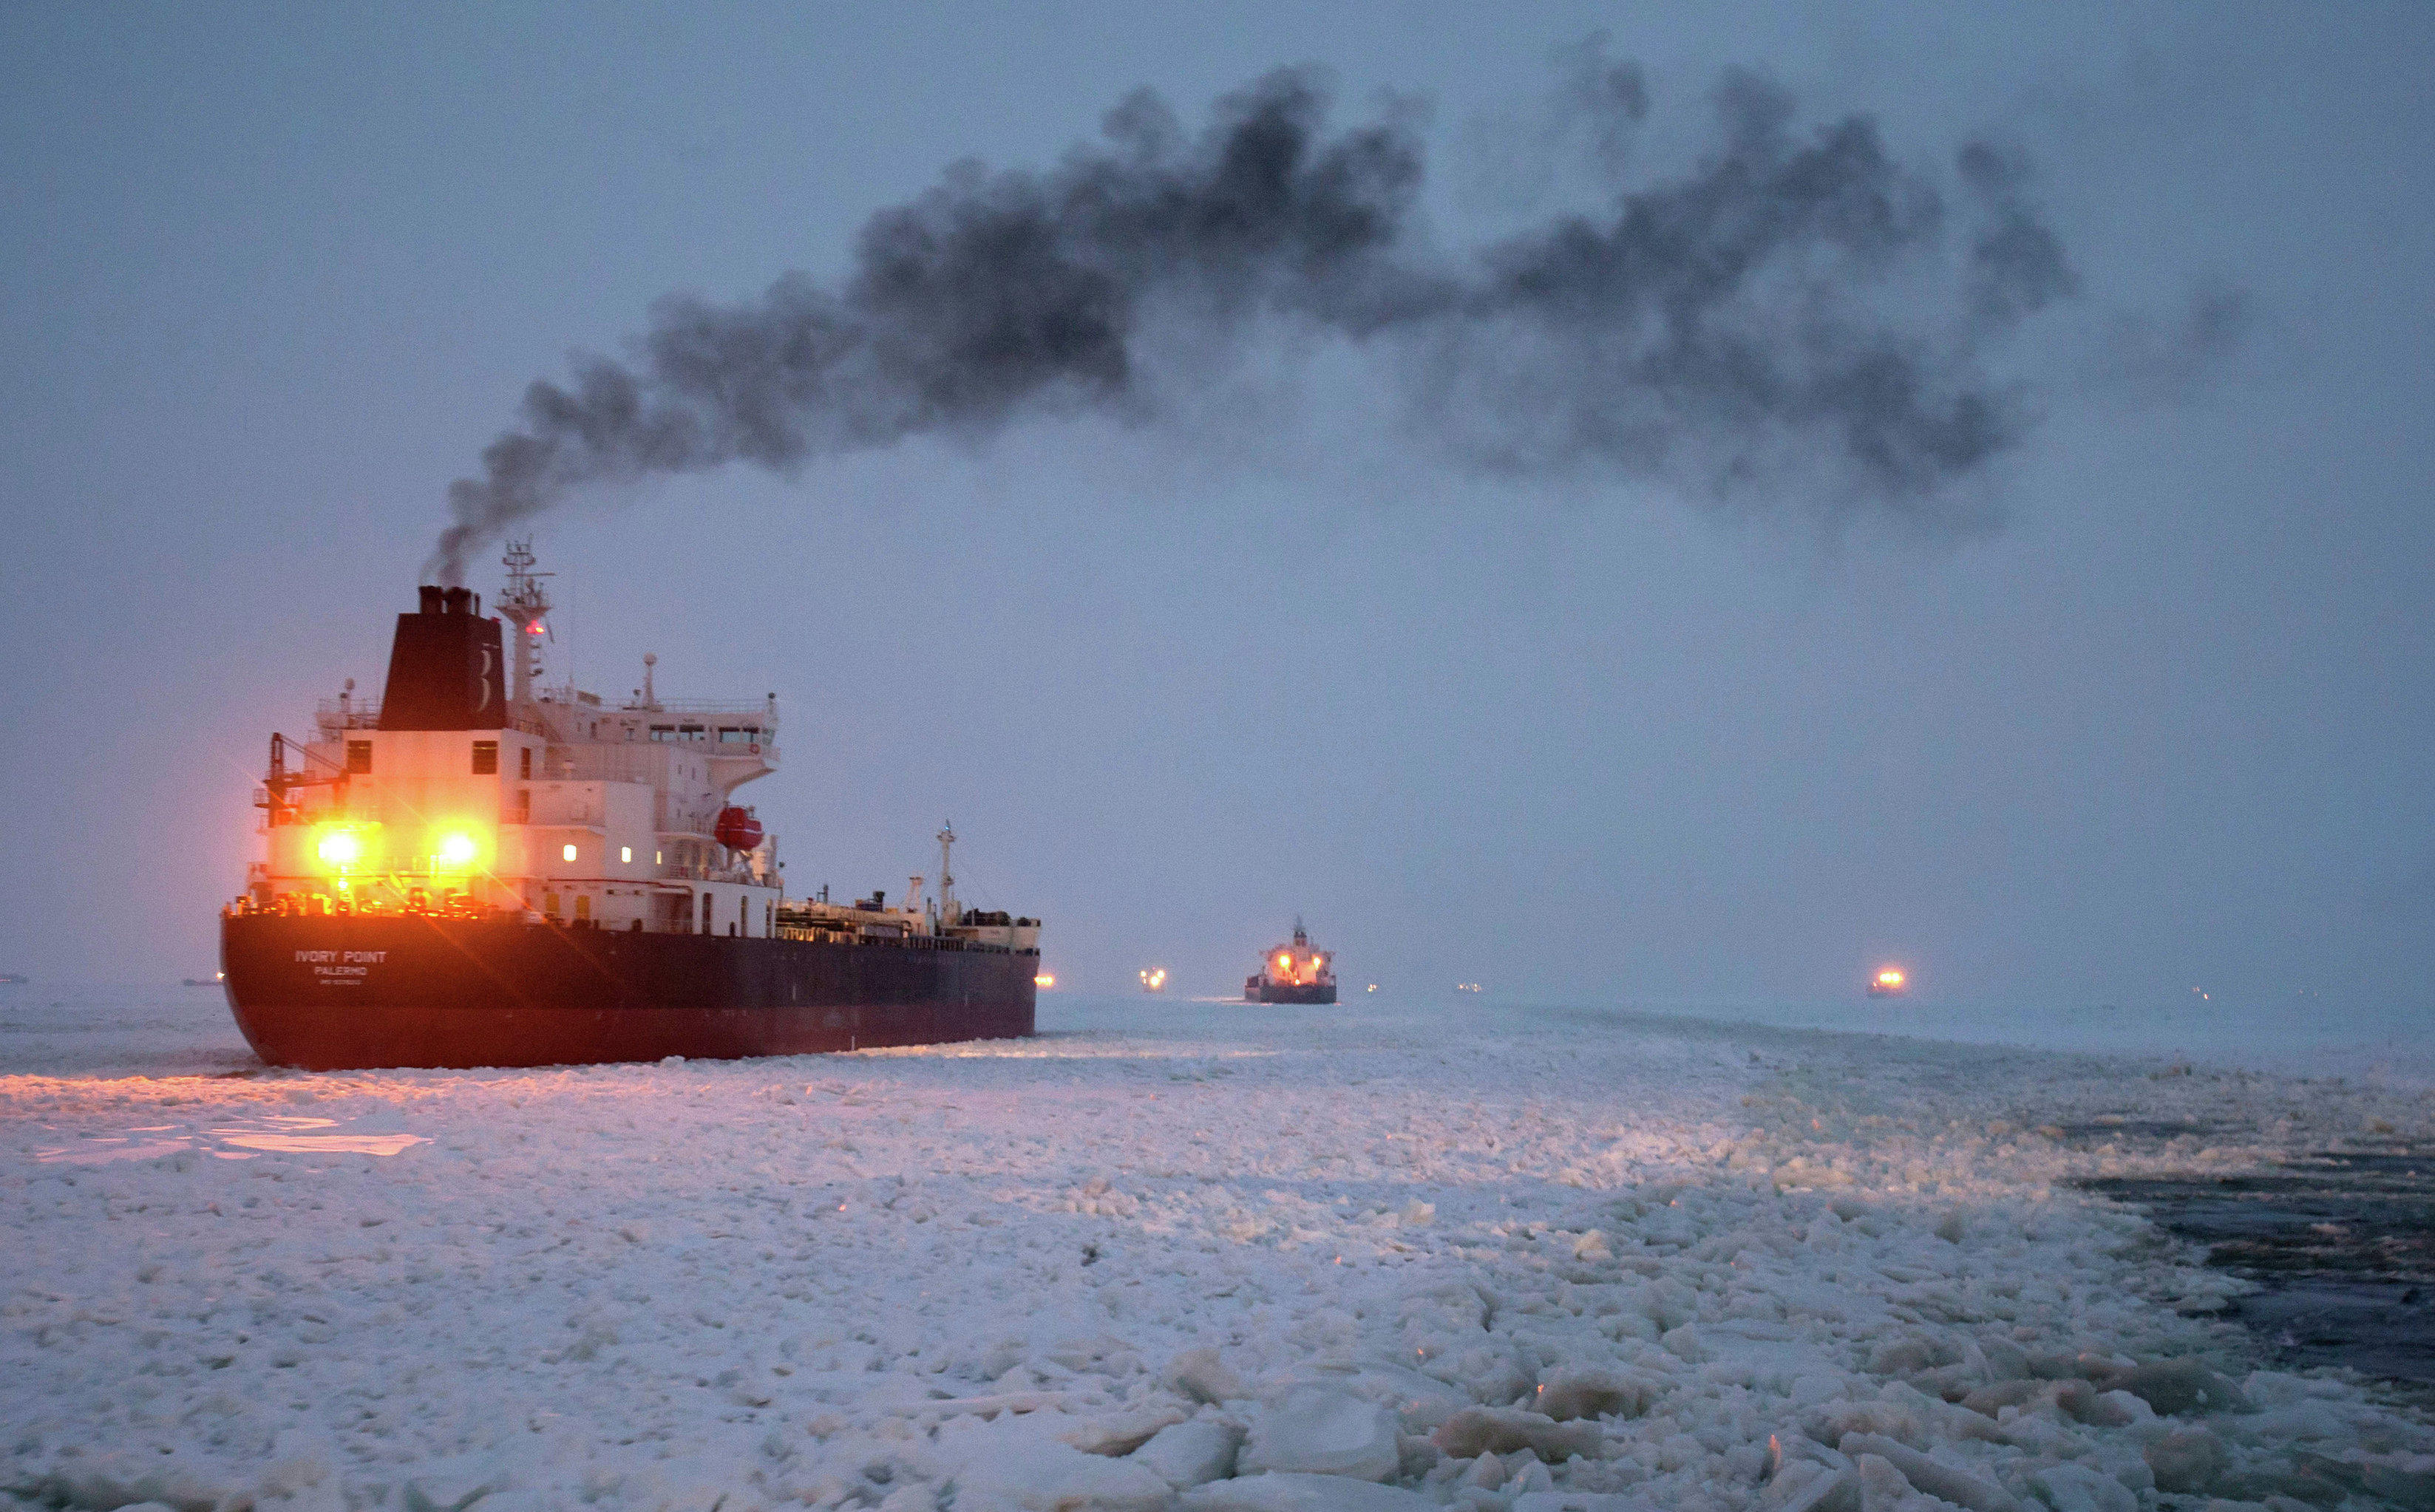 Vaigach nuclear icebreaker leading ships through Gulf of Finland